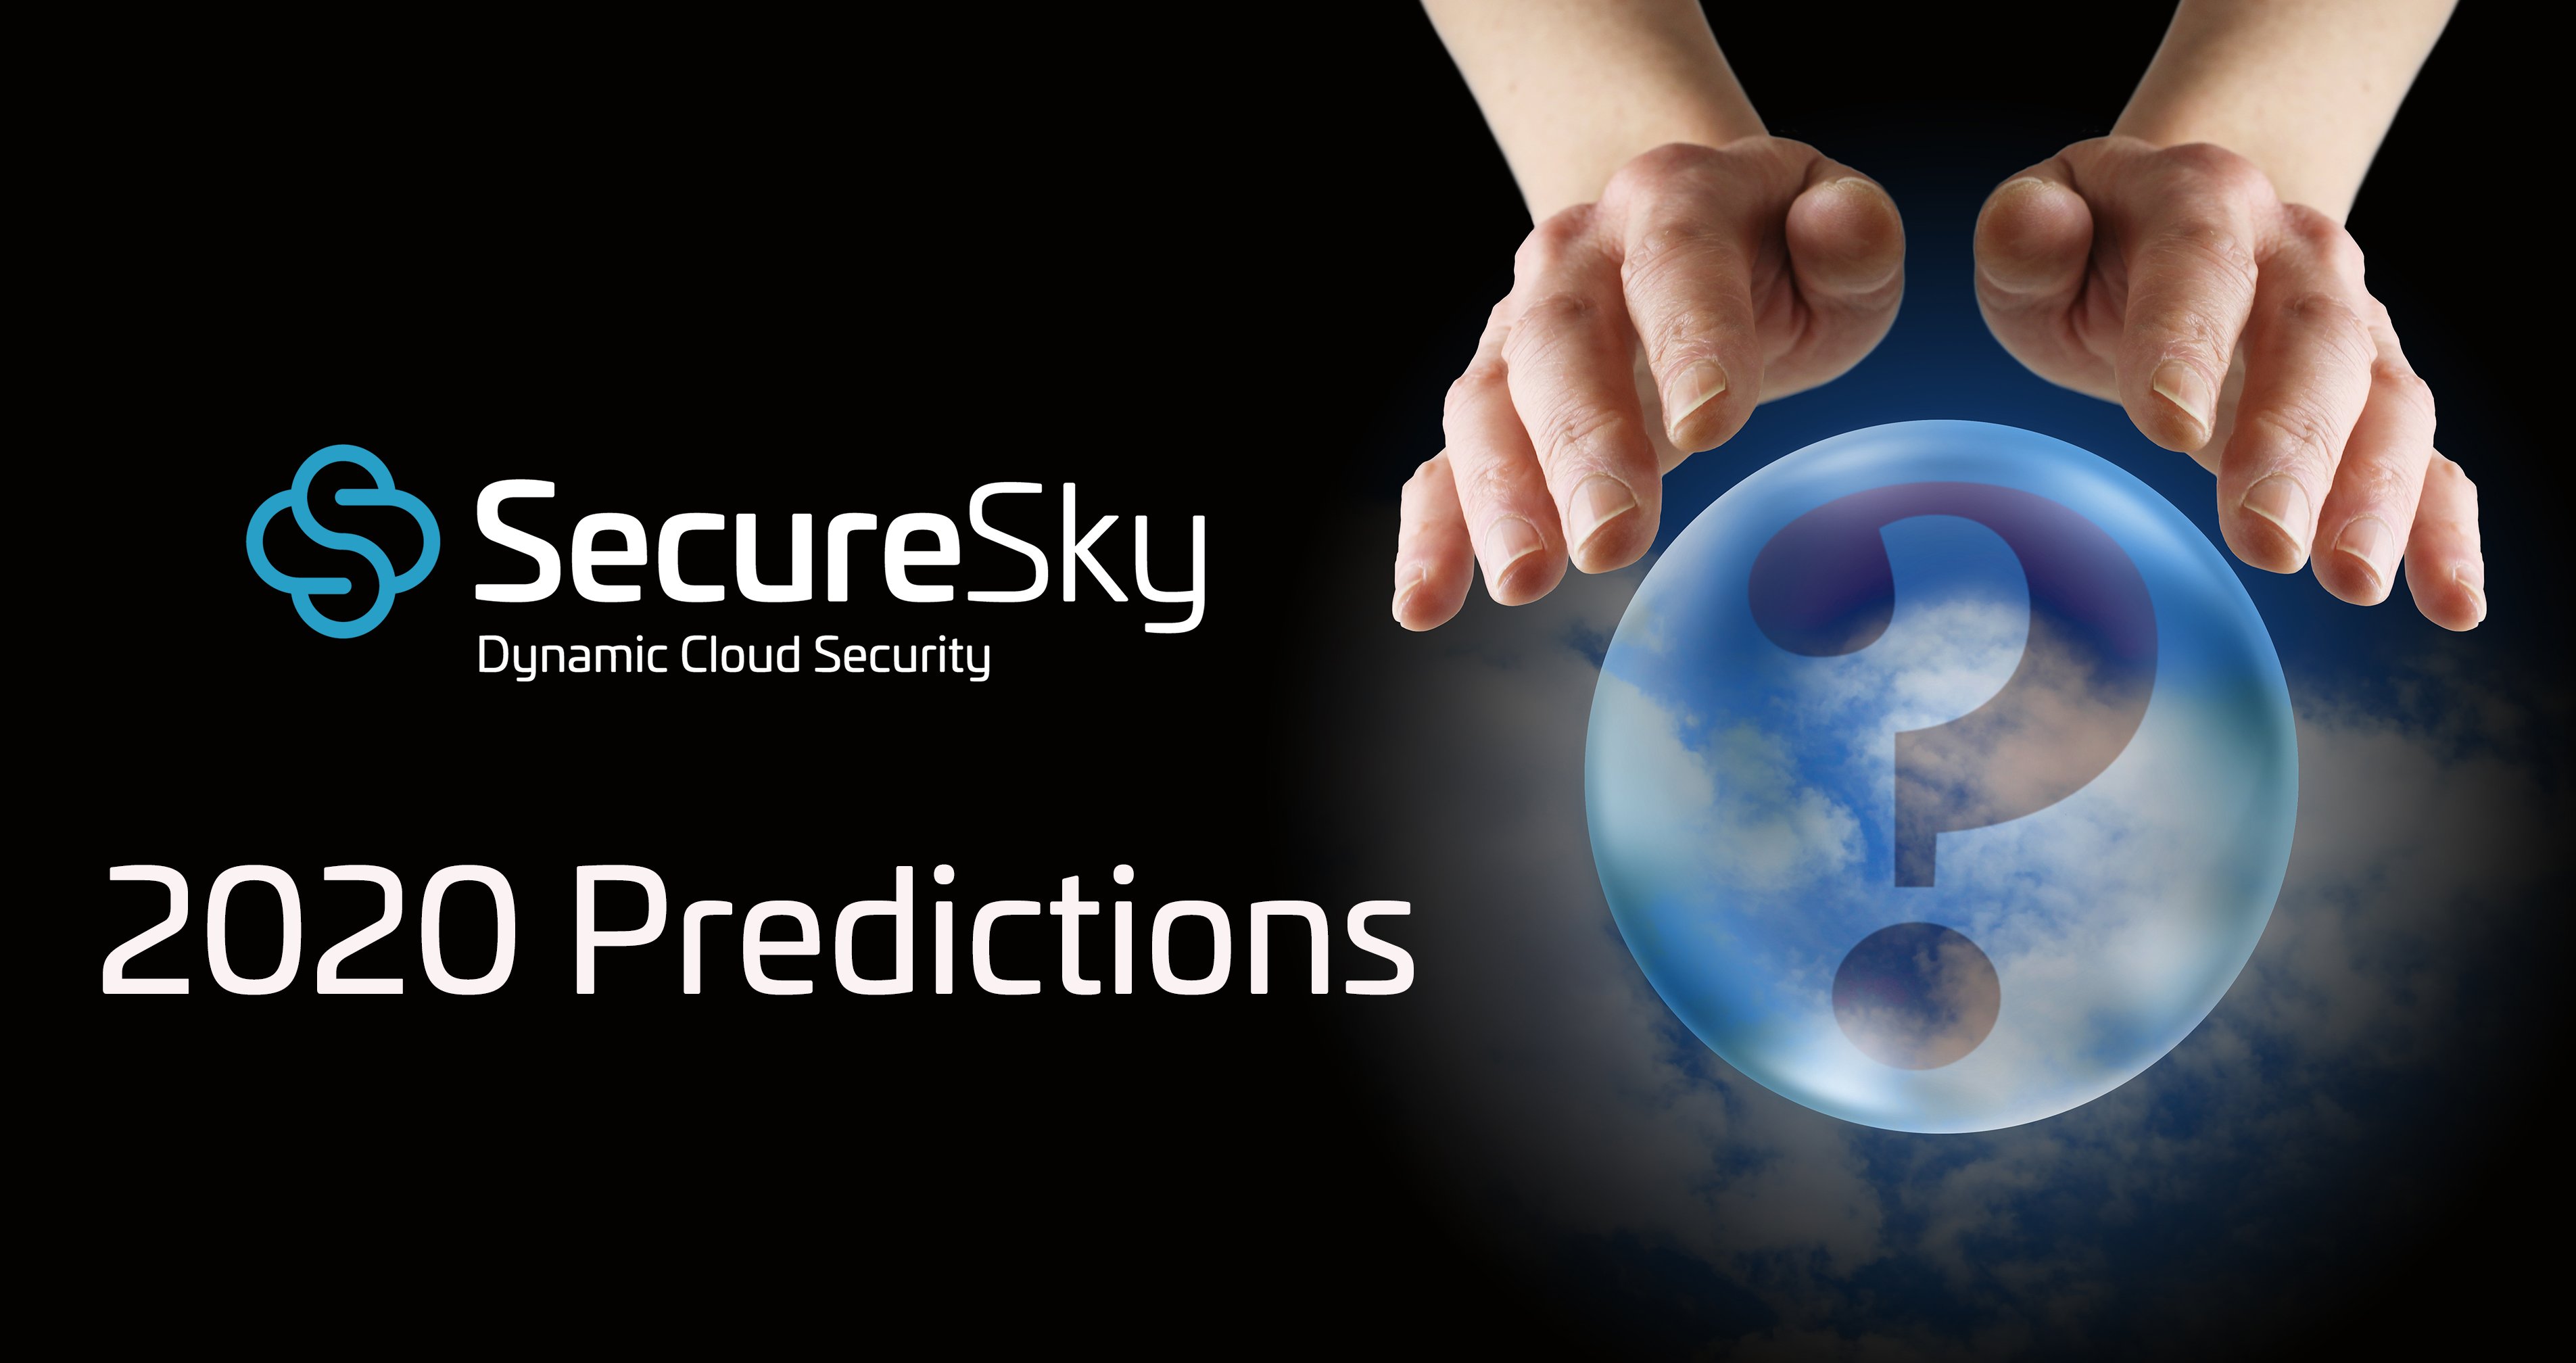 SecureSky's Top 5 2020 Cloud Security Predictions